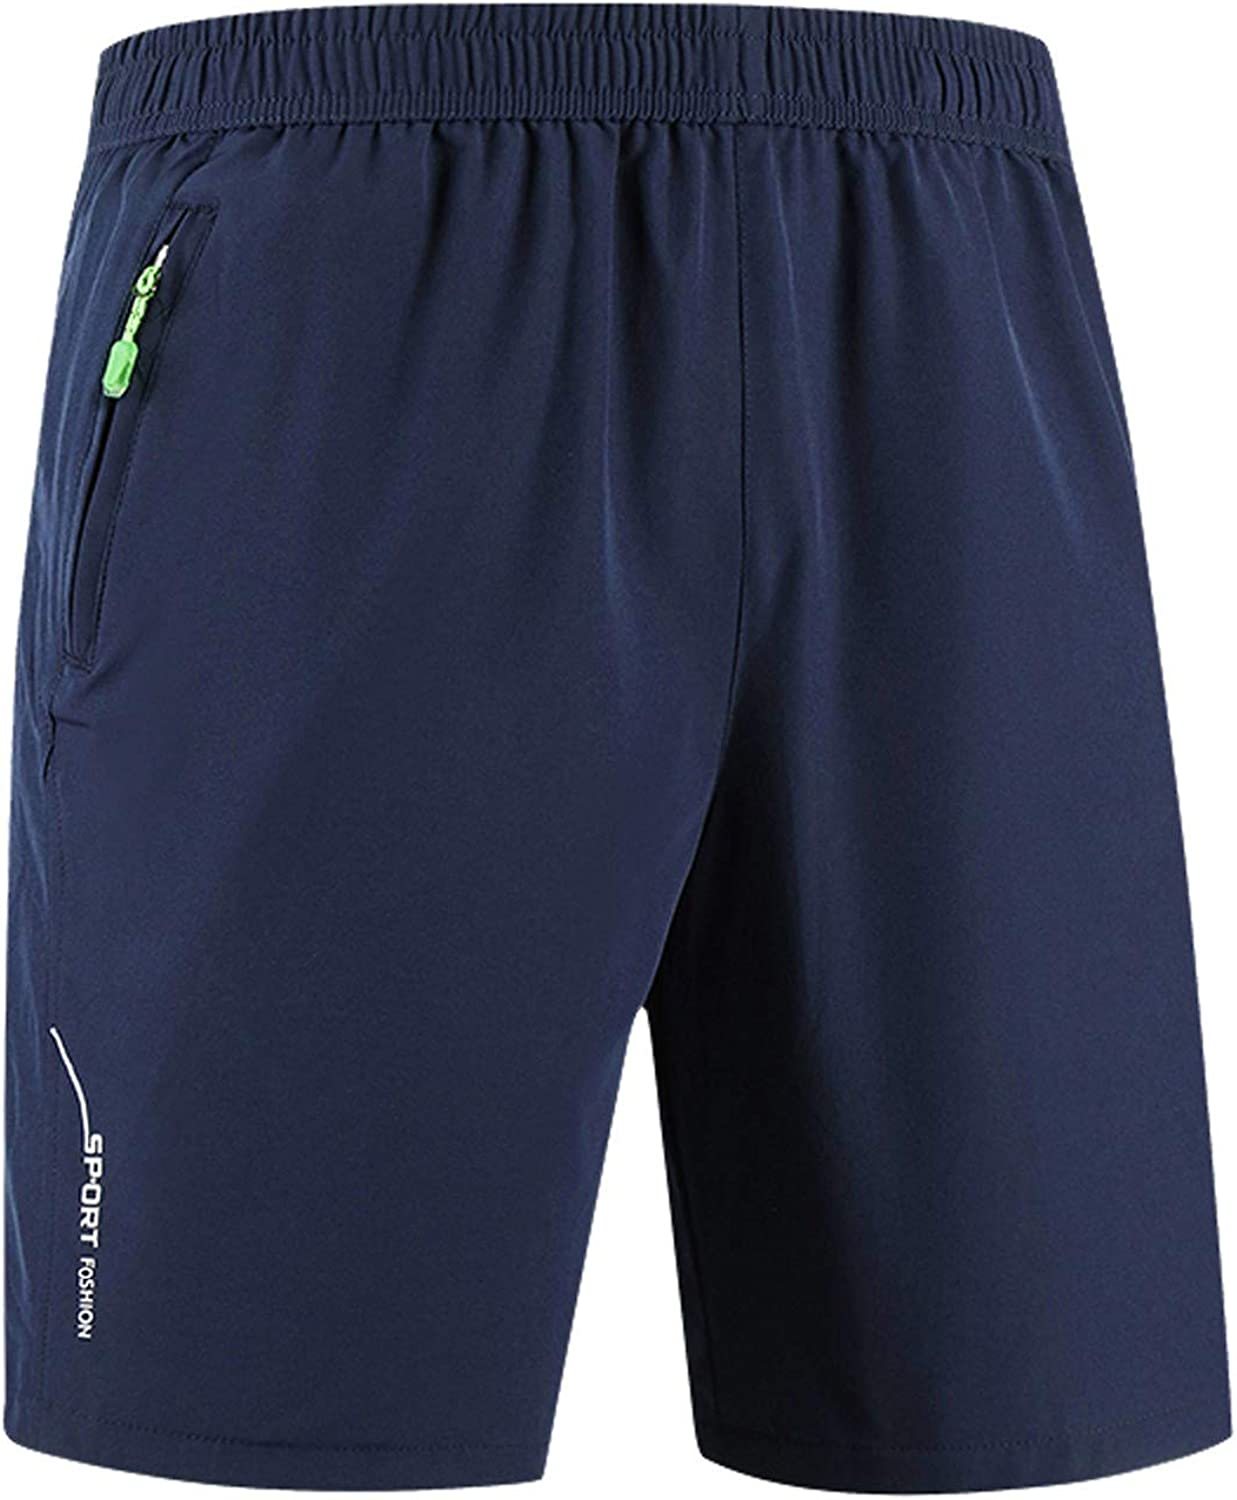 DIOMOR Mens Plus Size Zipper Pocket Athletic Shorts Quick Dry Beach Trunks Solid Color Big and Tall Sport Shorts